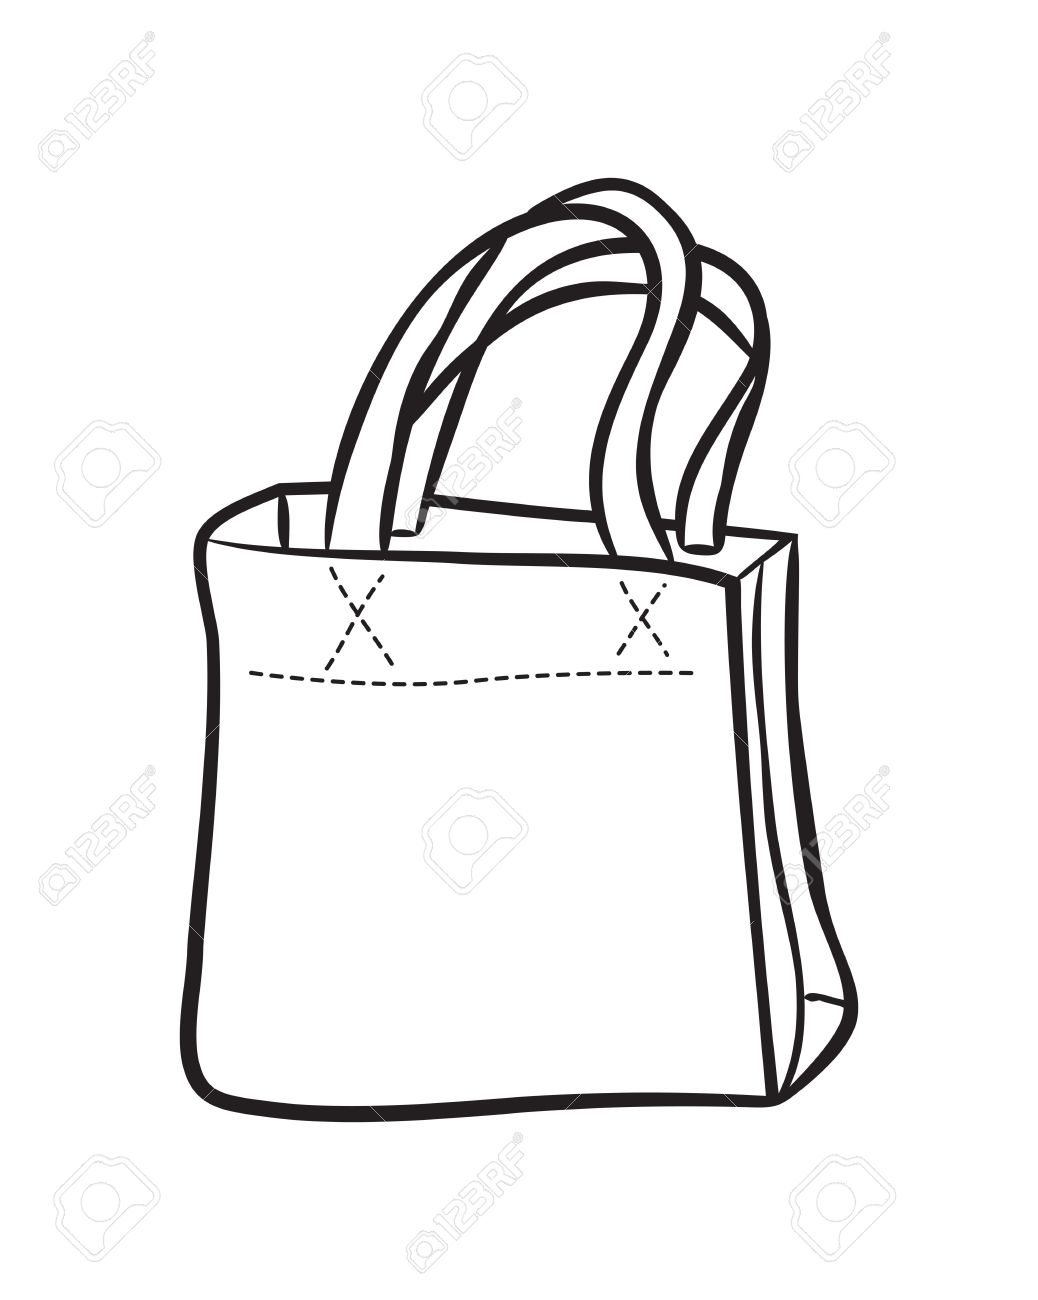 1038x1300 Shopping Bag Doodle Royalty Free Cliparts, Vectors, And Stock